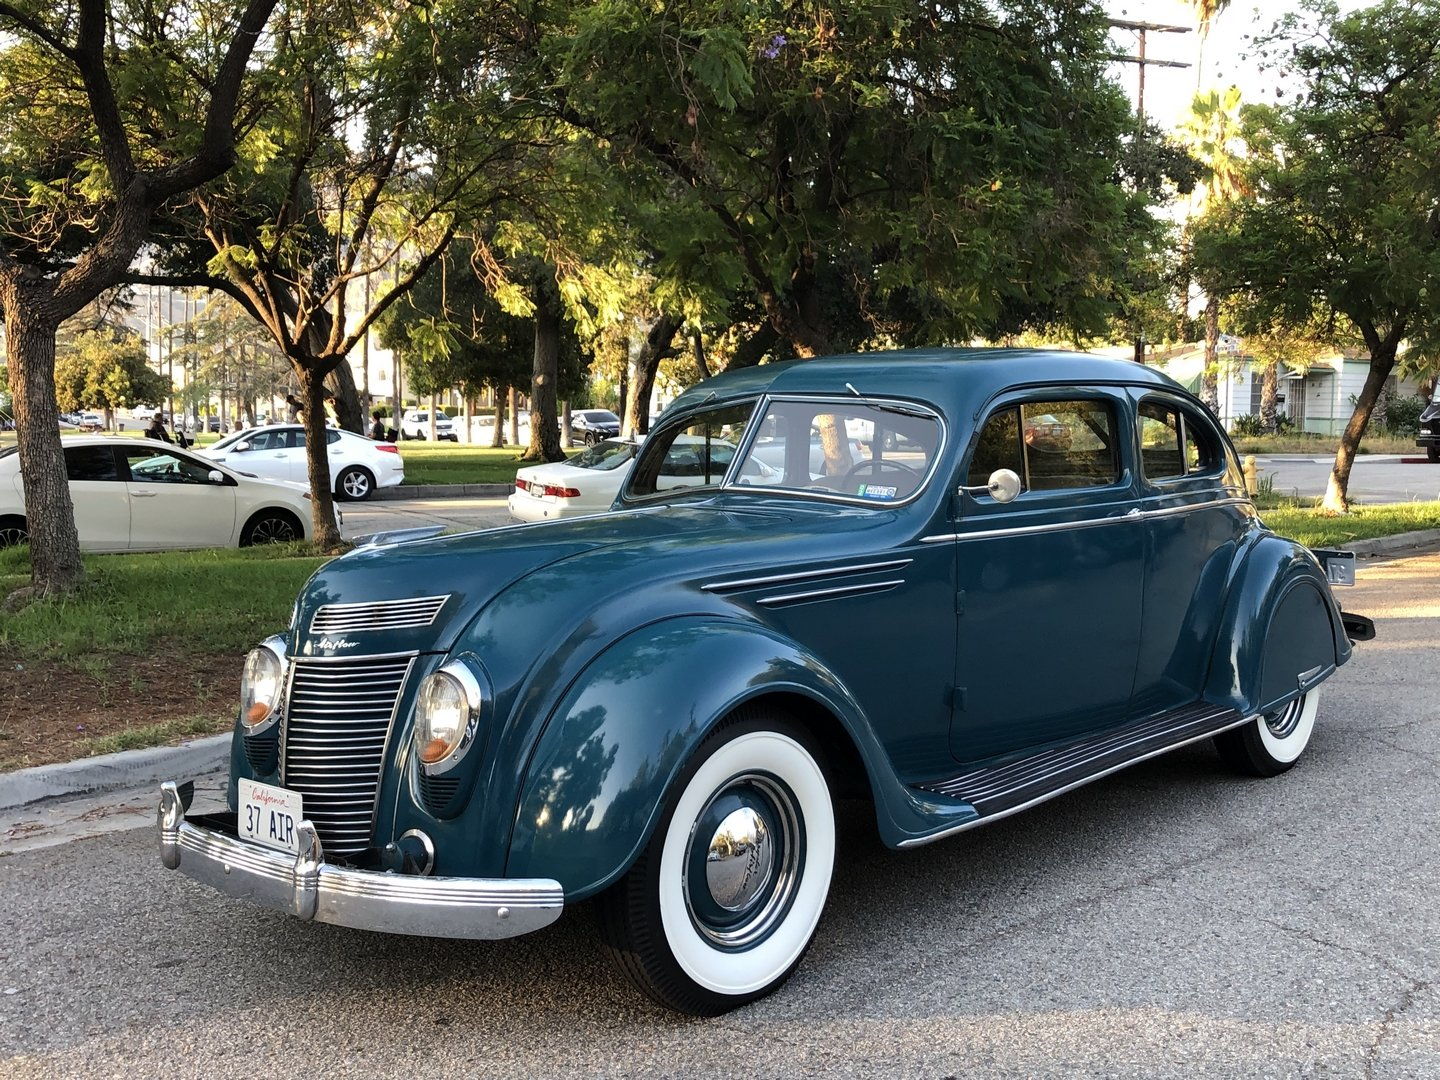 1937 CHRYSLER AIRFLOW COUPE For Sale (picture 1 of 6)